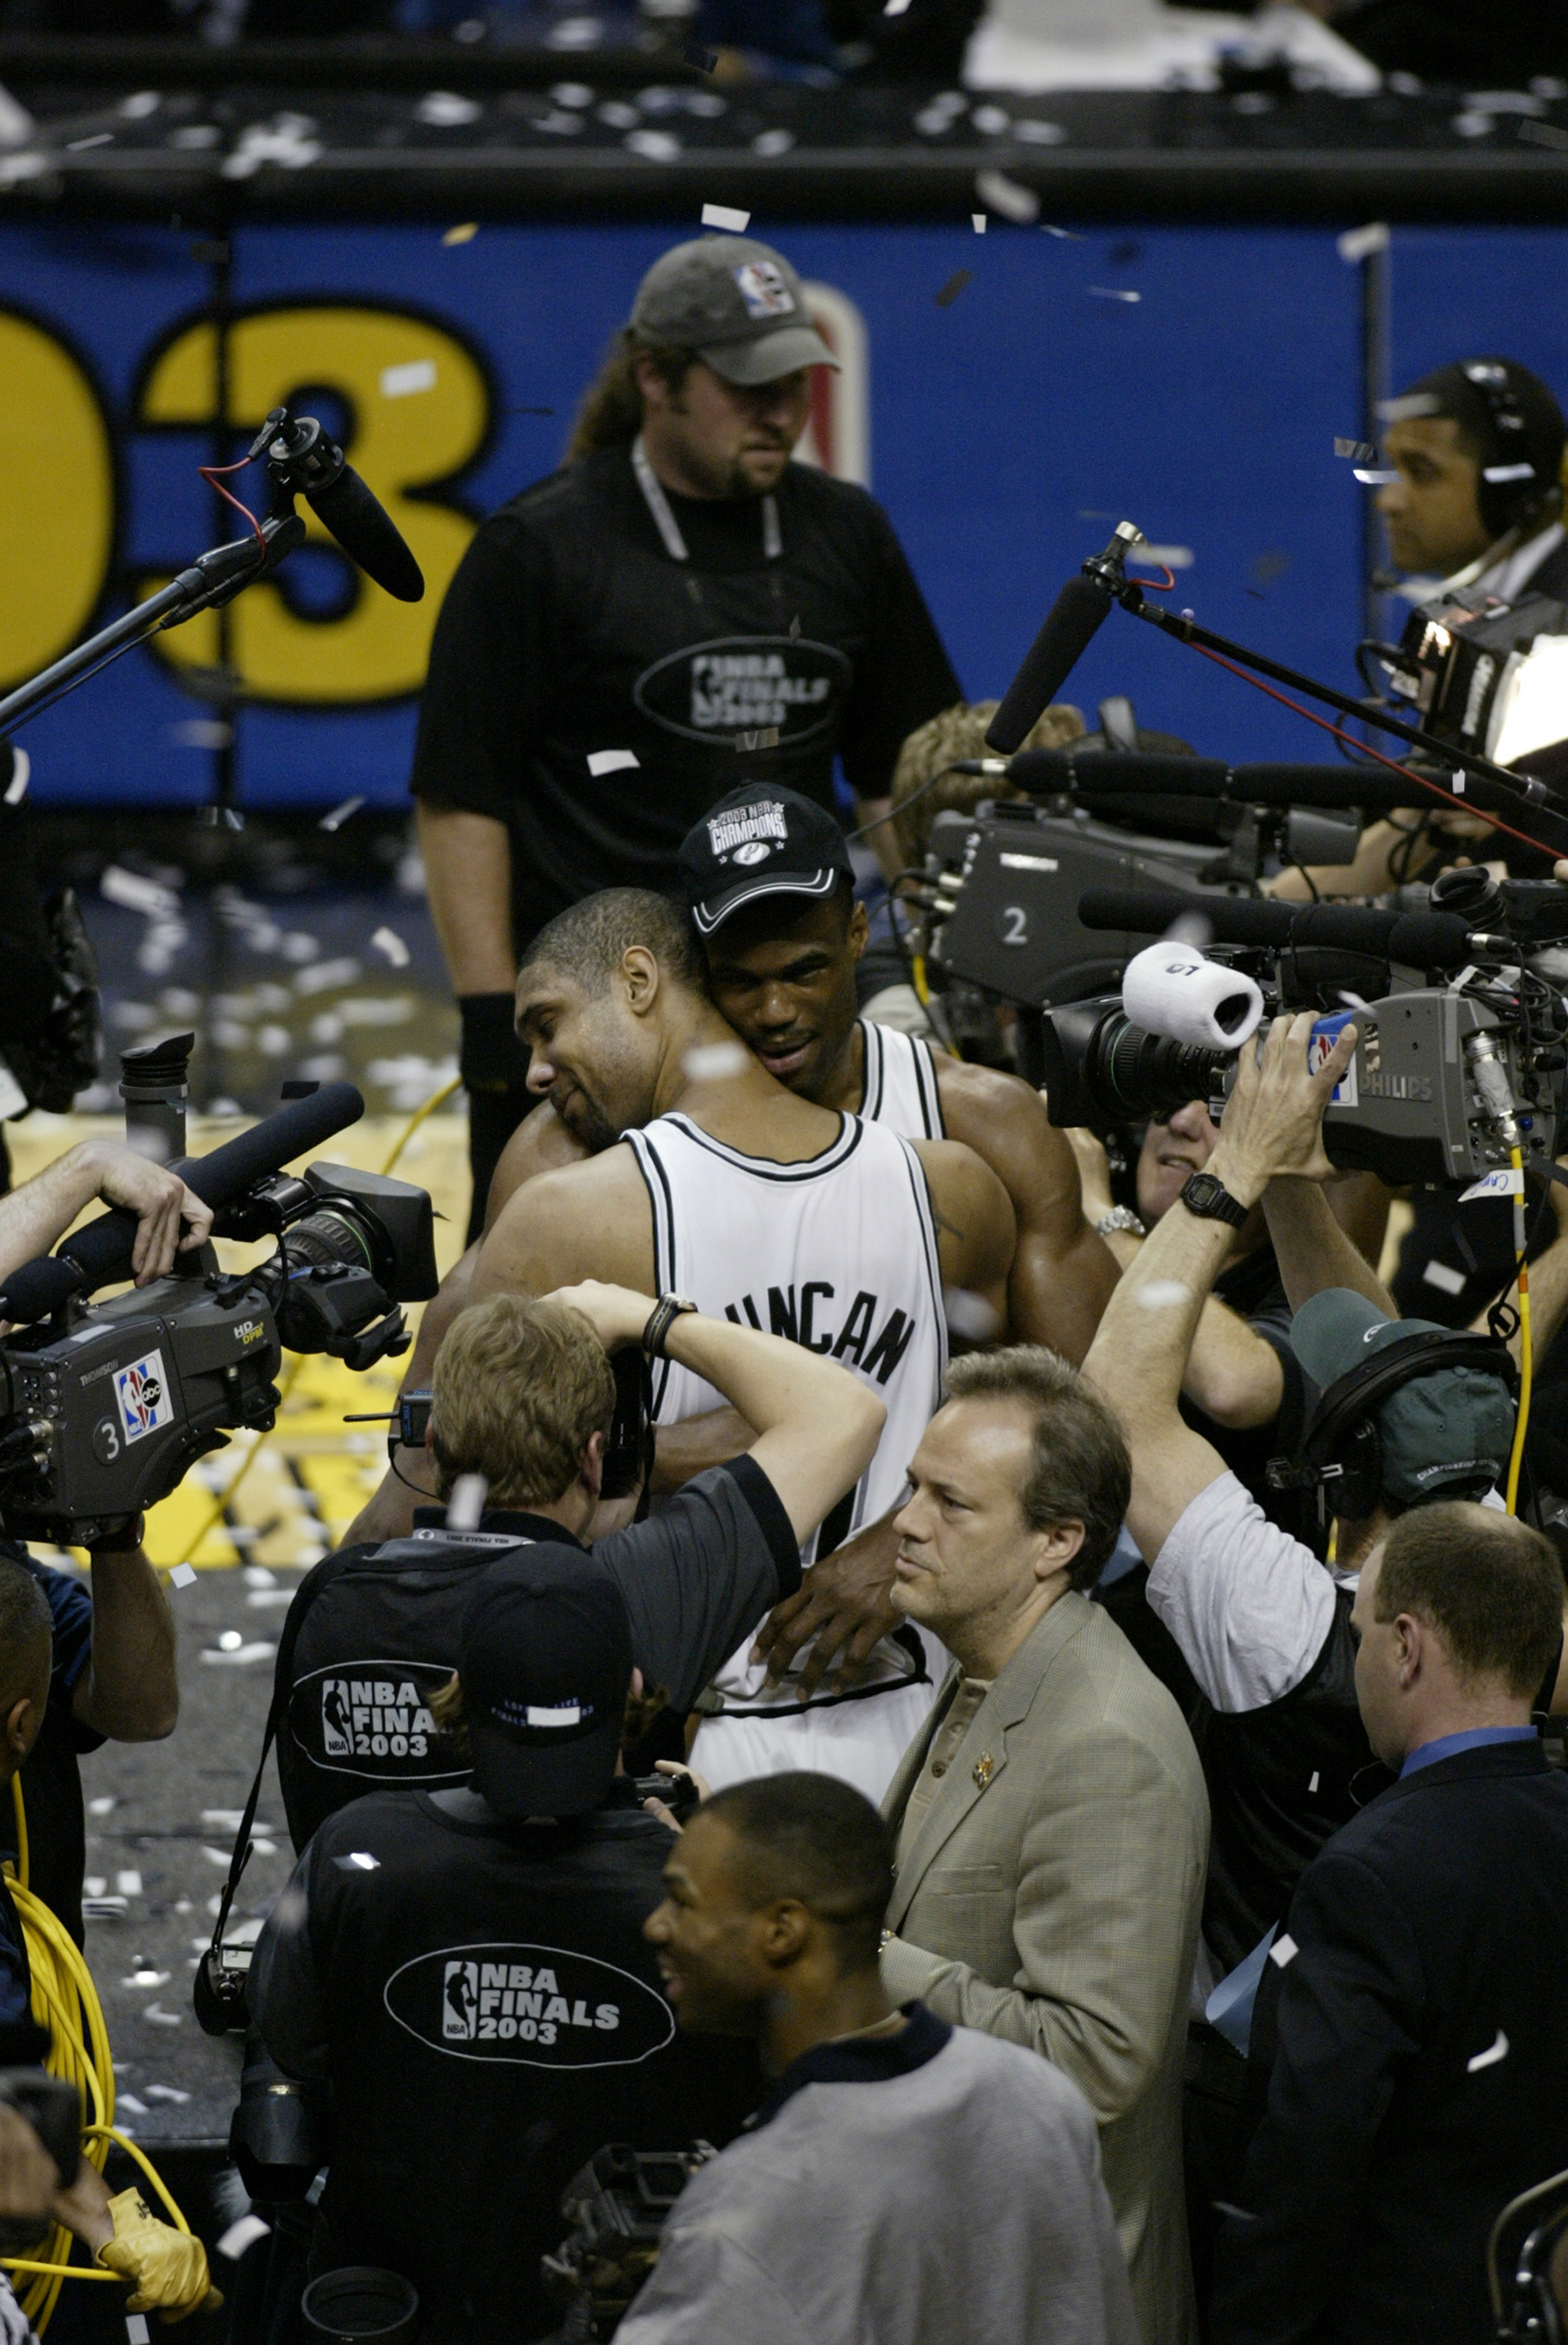 SAN ANTONIO - JUNE 15:  David Robinson #50 and Tim Duncan #21 of the San Antonio Spurs celebrate the NBA Championship after defeating the New Jersey Nets in game six of the 2003 NBA Finals at the SBC Center on June 15, 2003 in San Antonio, Texas.  The Spu